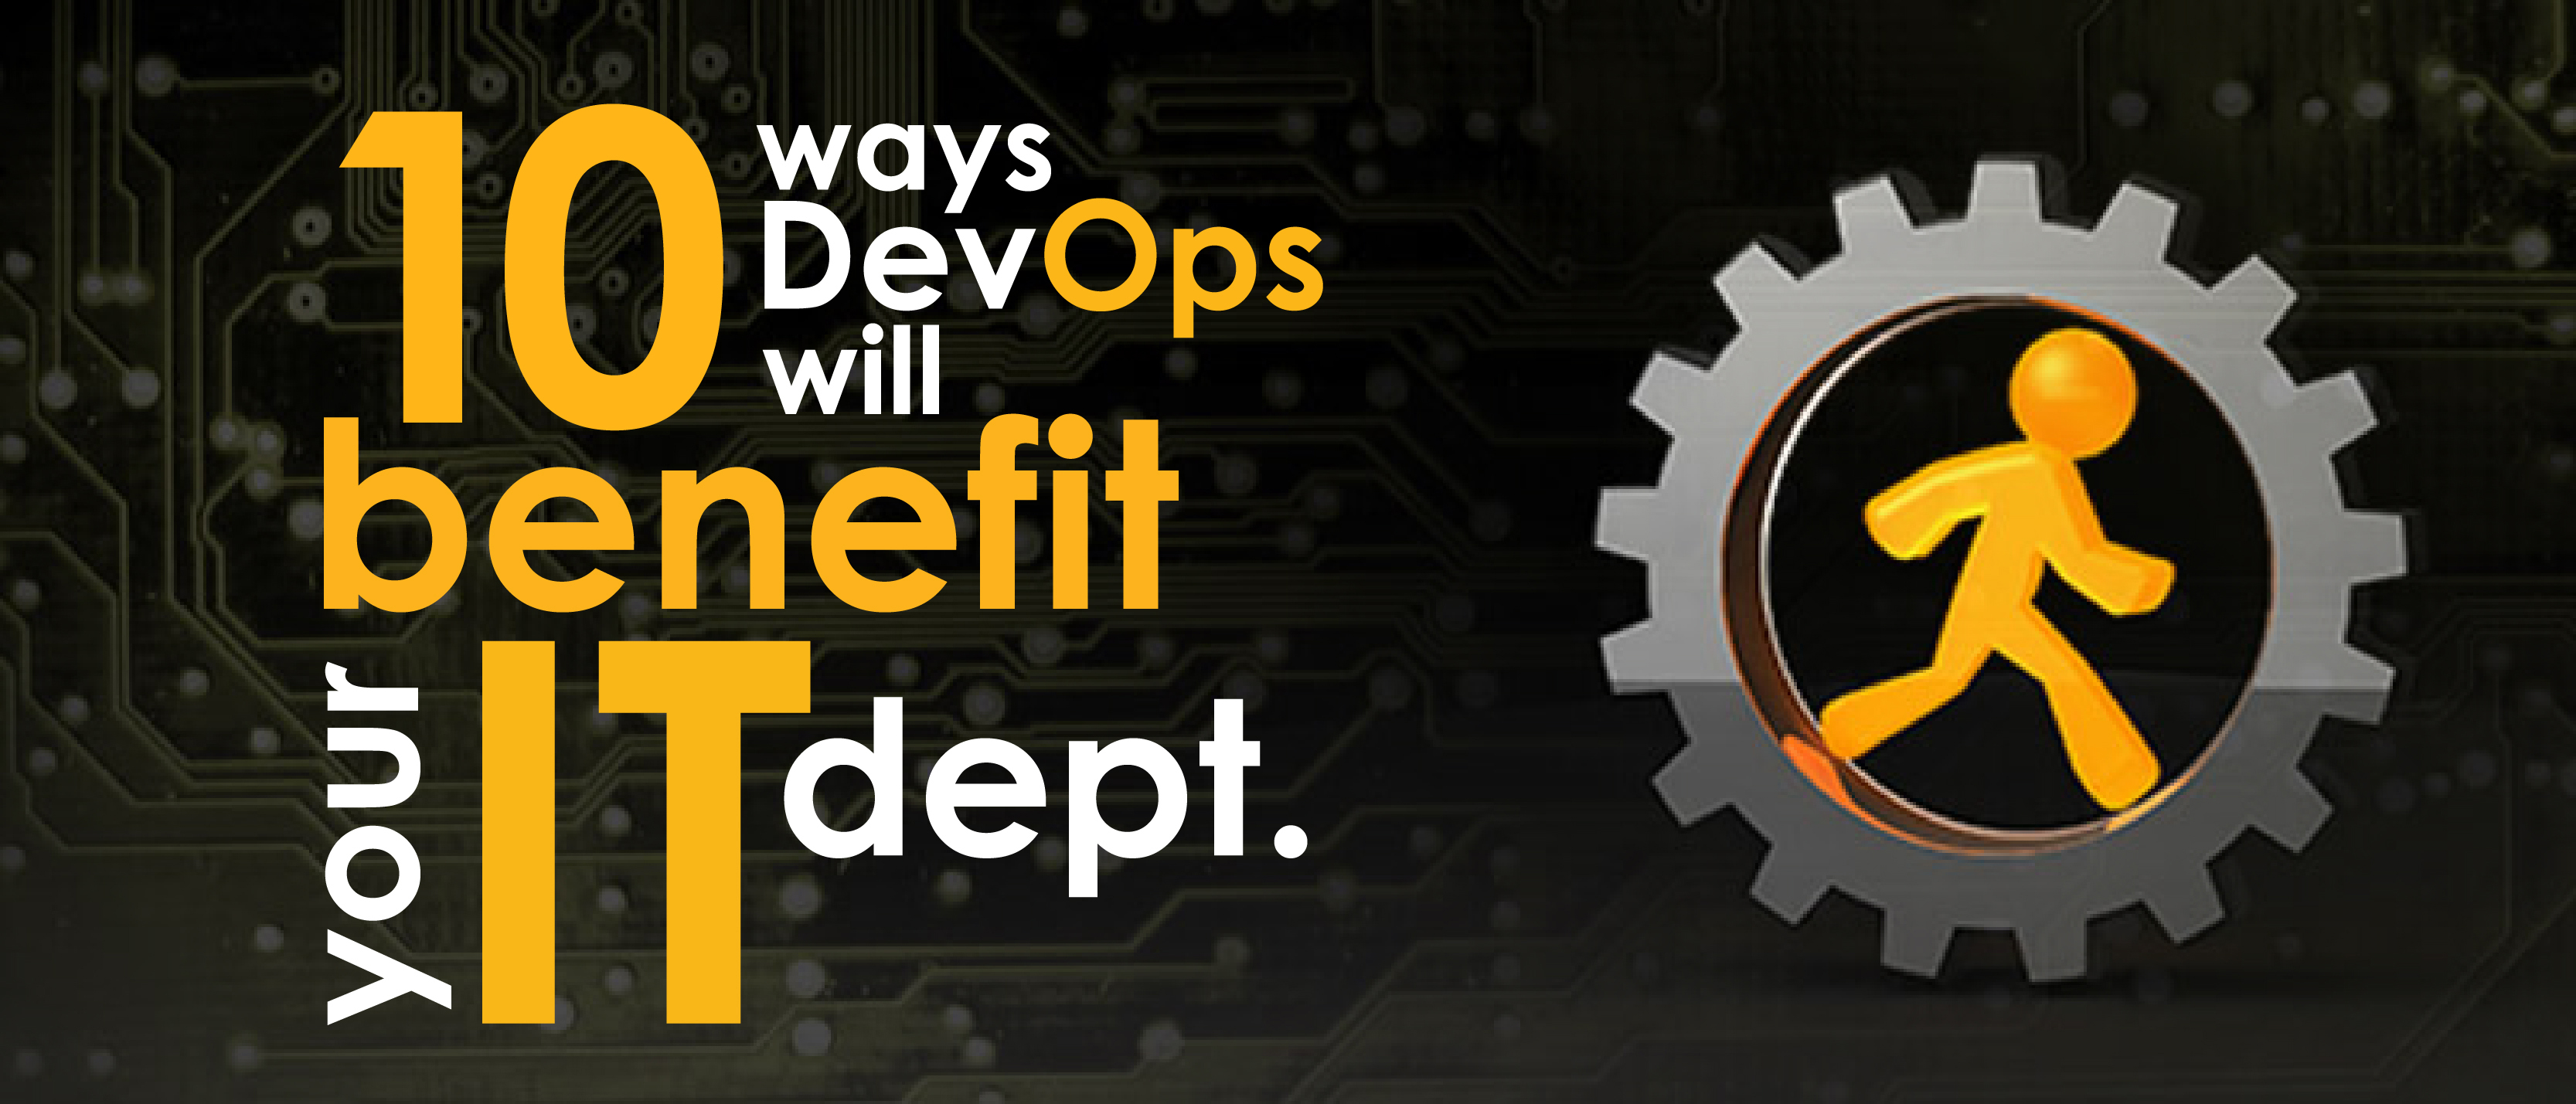 Ten ways DevOps will benefit your IT department